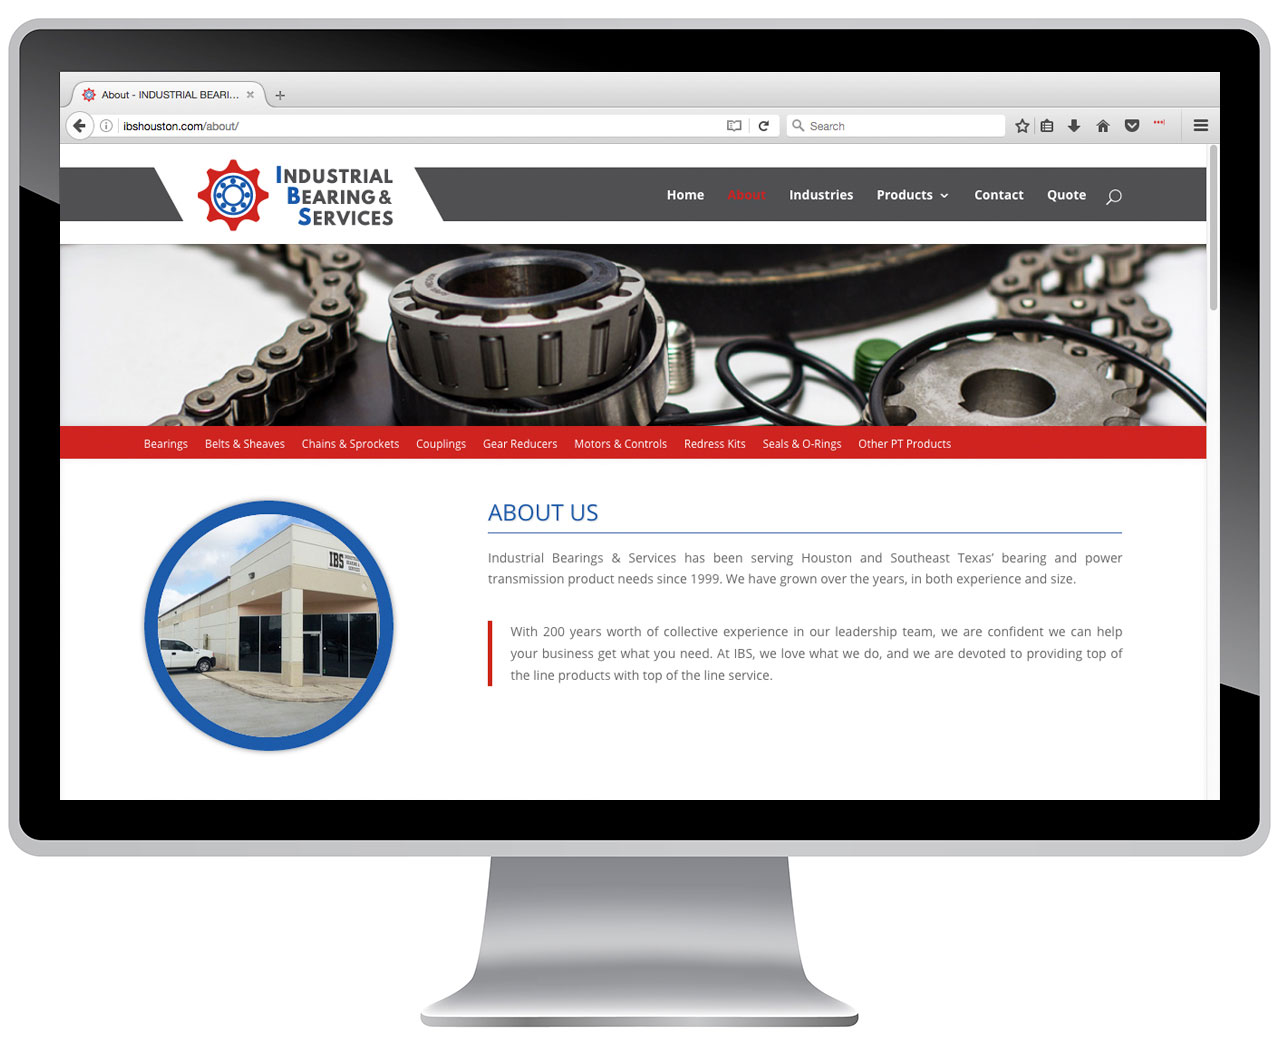 Industrial Bearings & Services